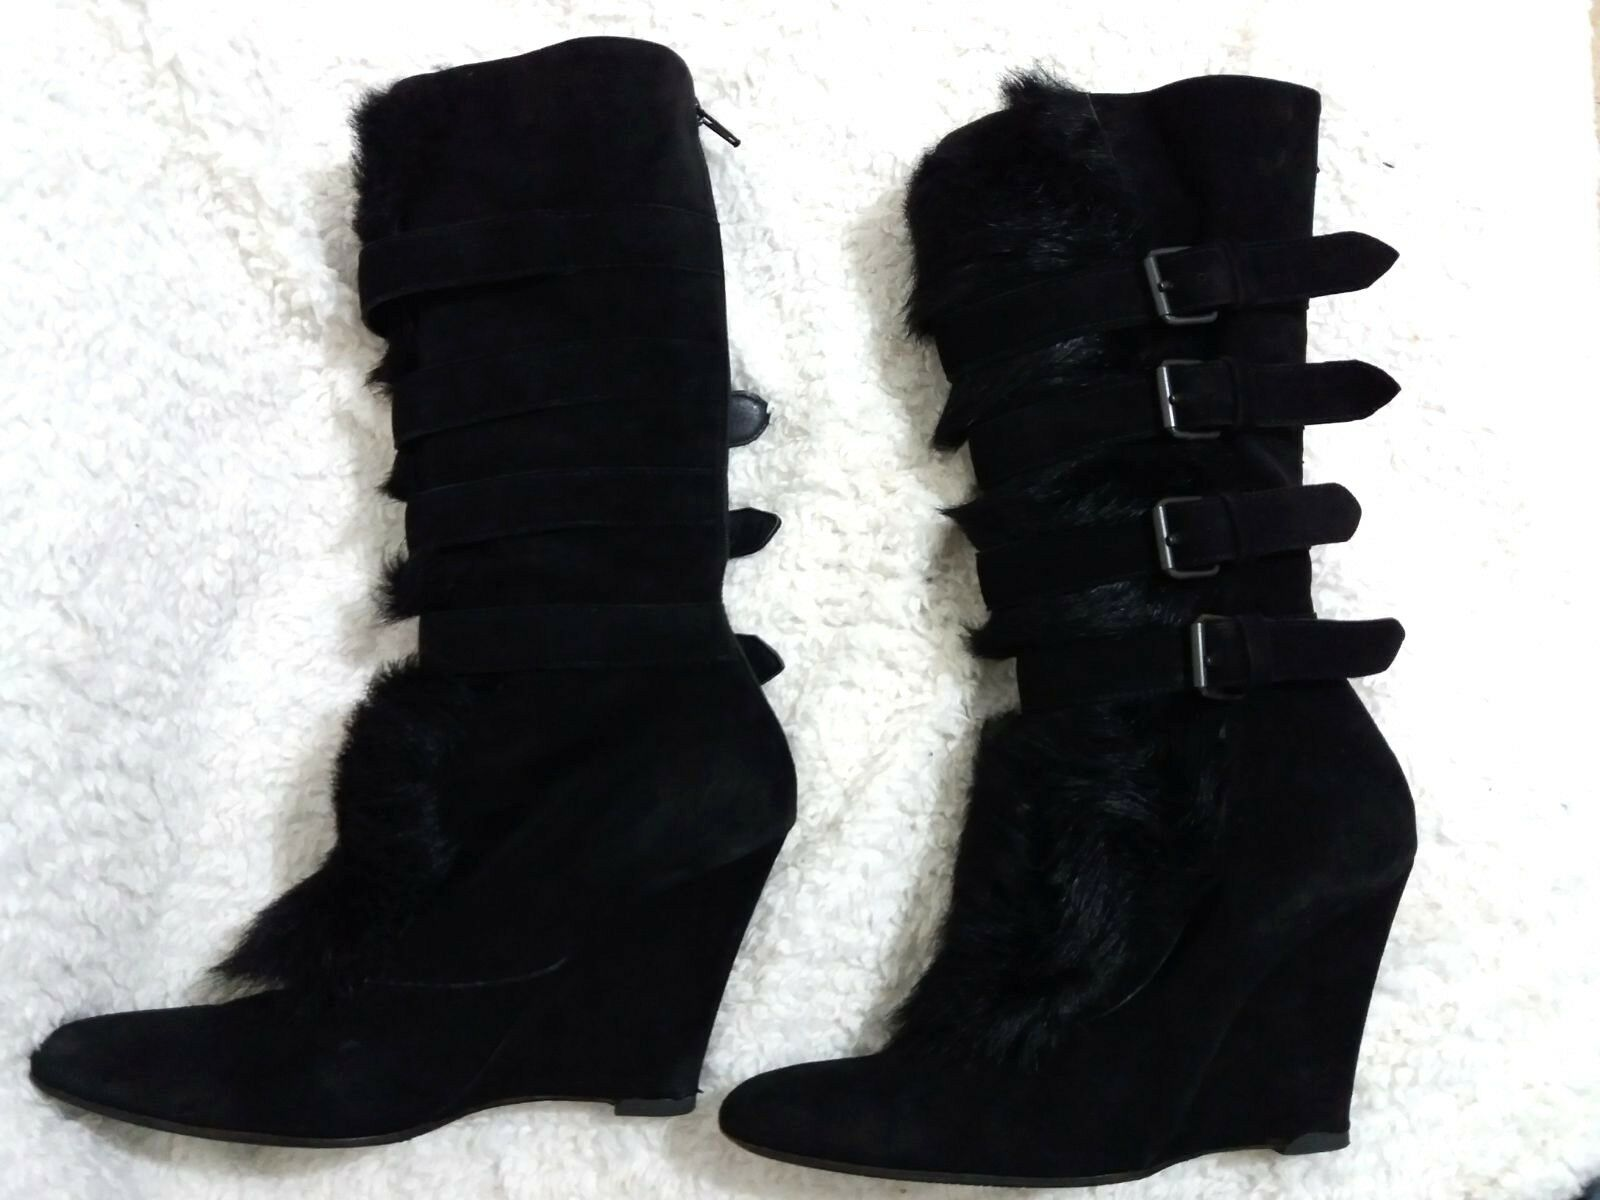 HELMUT LANG Women Women Women Boots Black Suede & Real Fur Wedge Mid Calf EU 39.5 US 9 UK 7 be444f